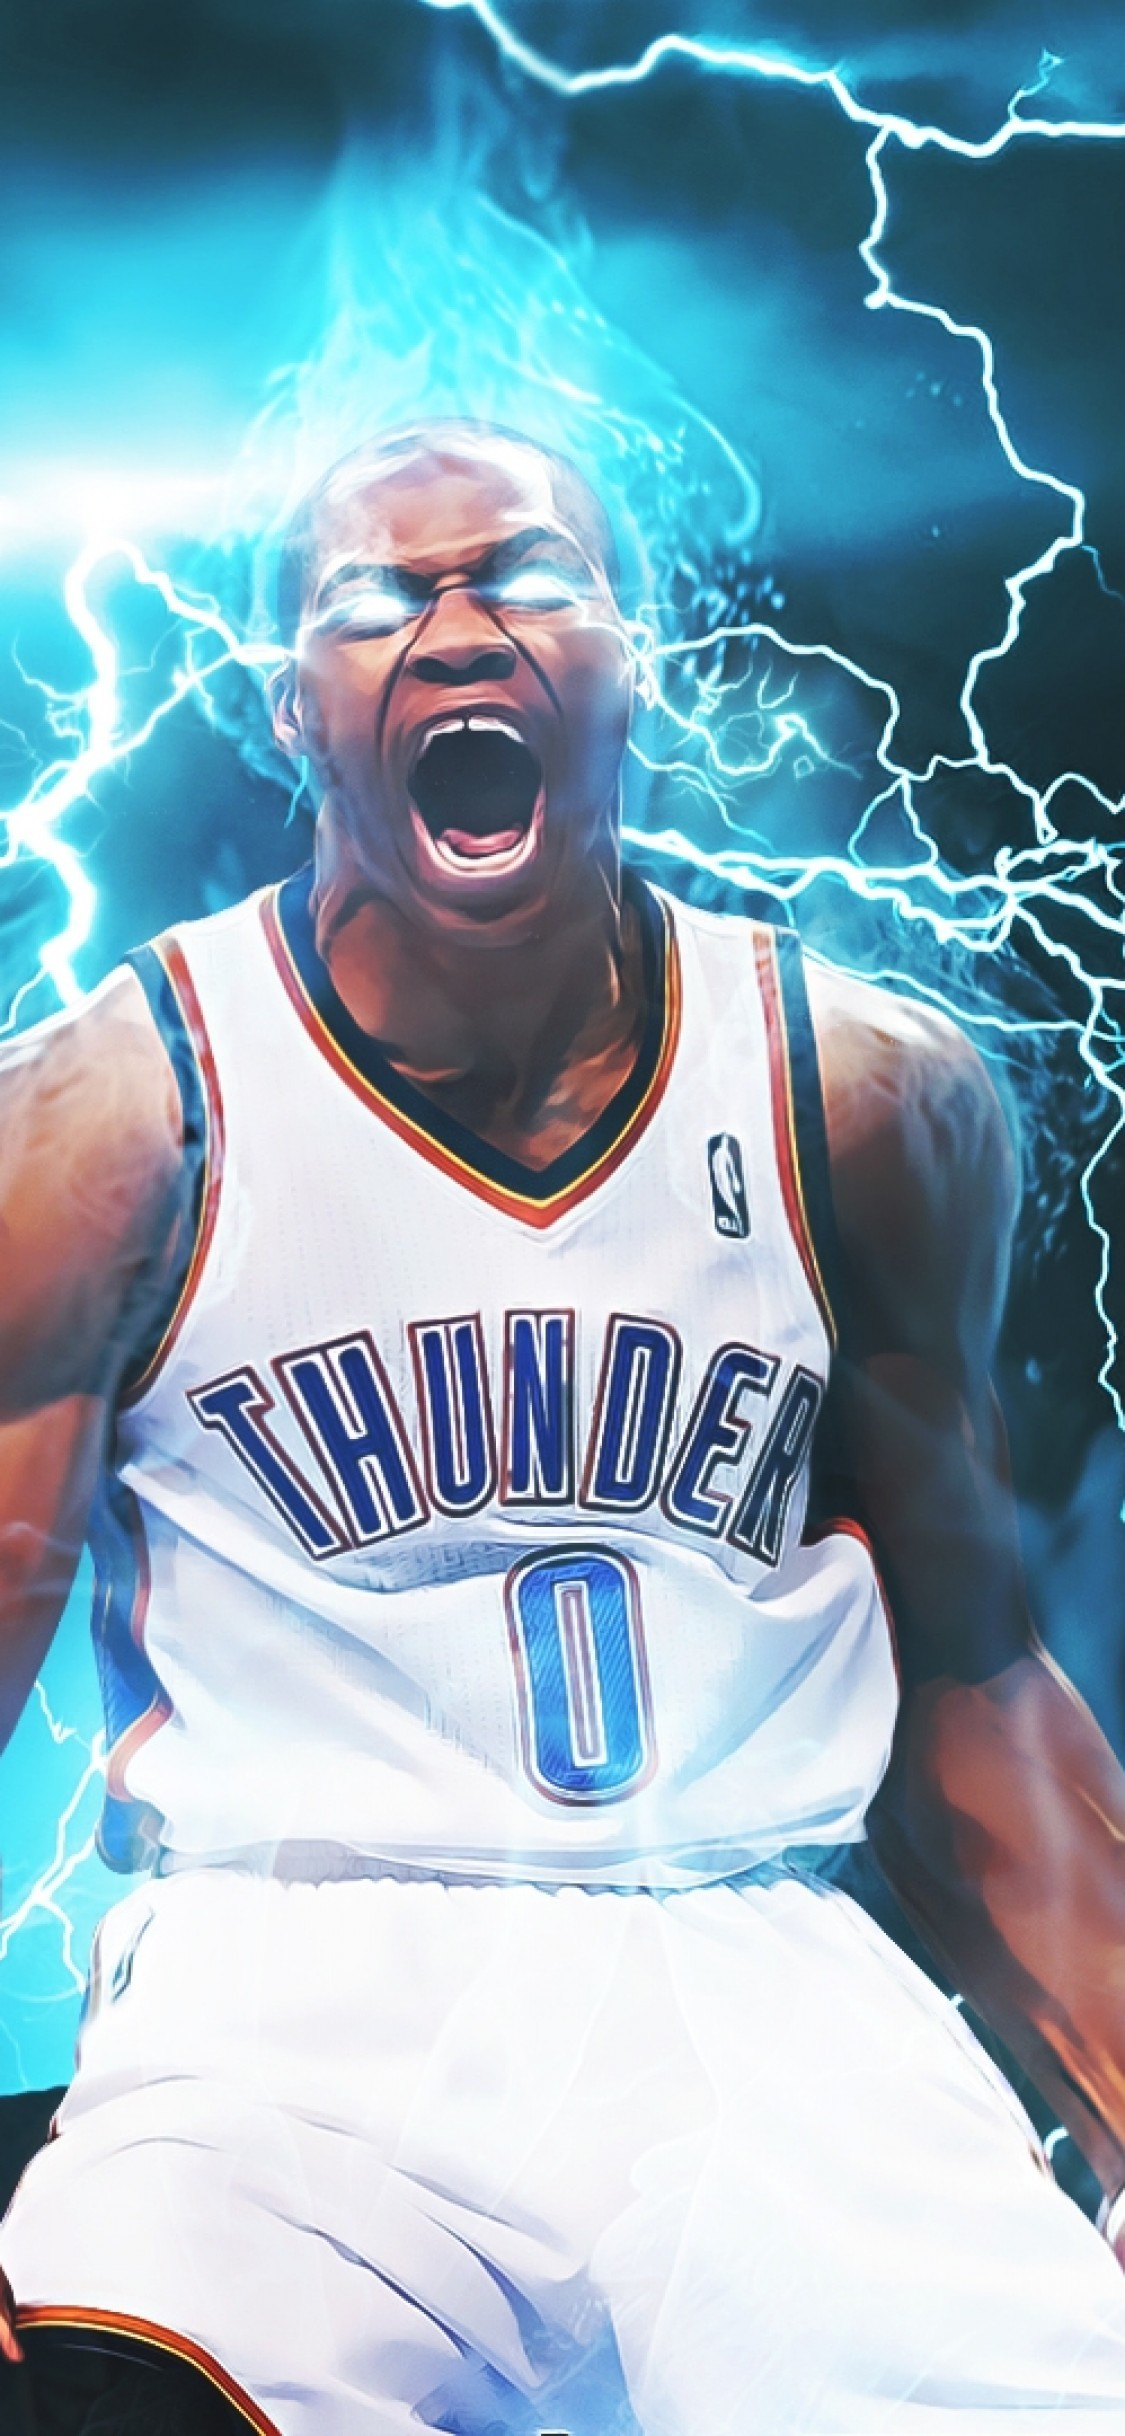 Knicks Iphone Wallpaper Oklahoma City Thunder Wallpapers 67 Images